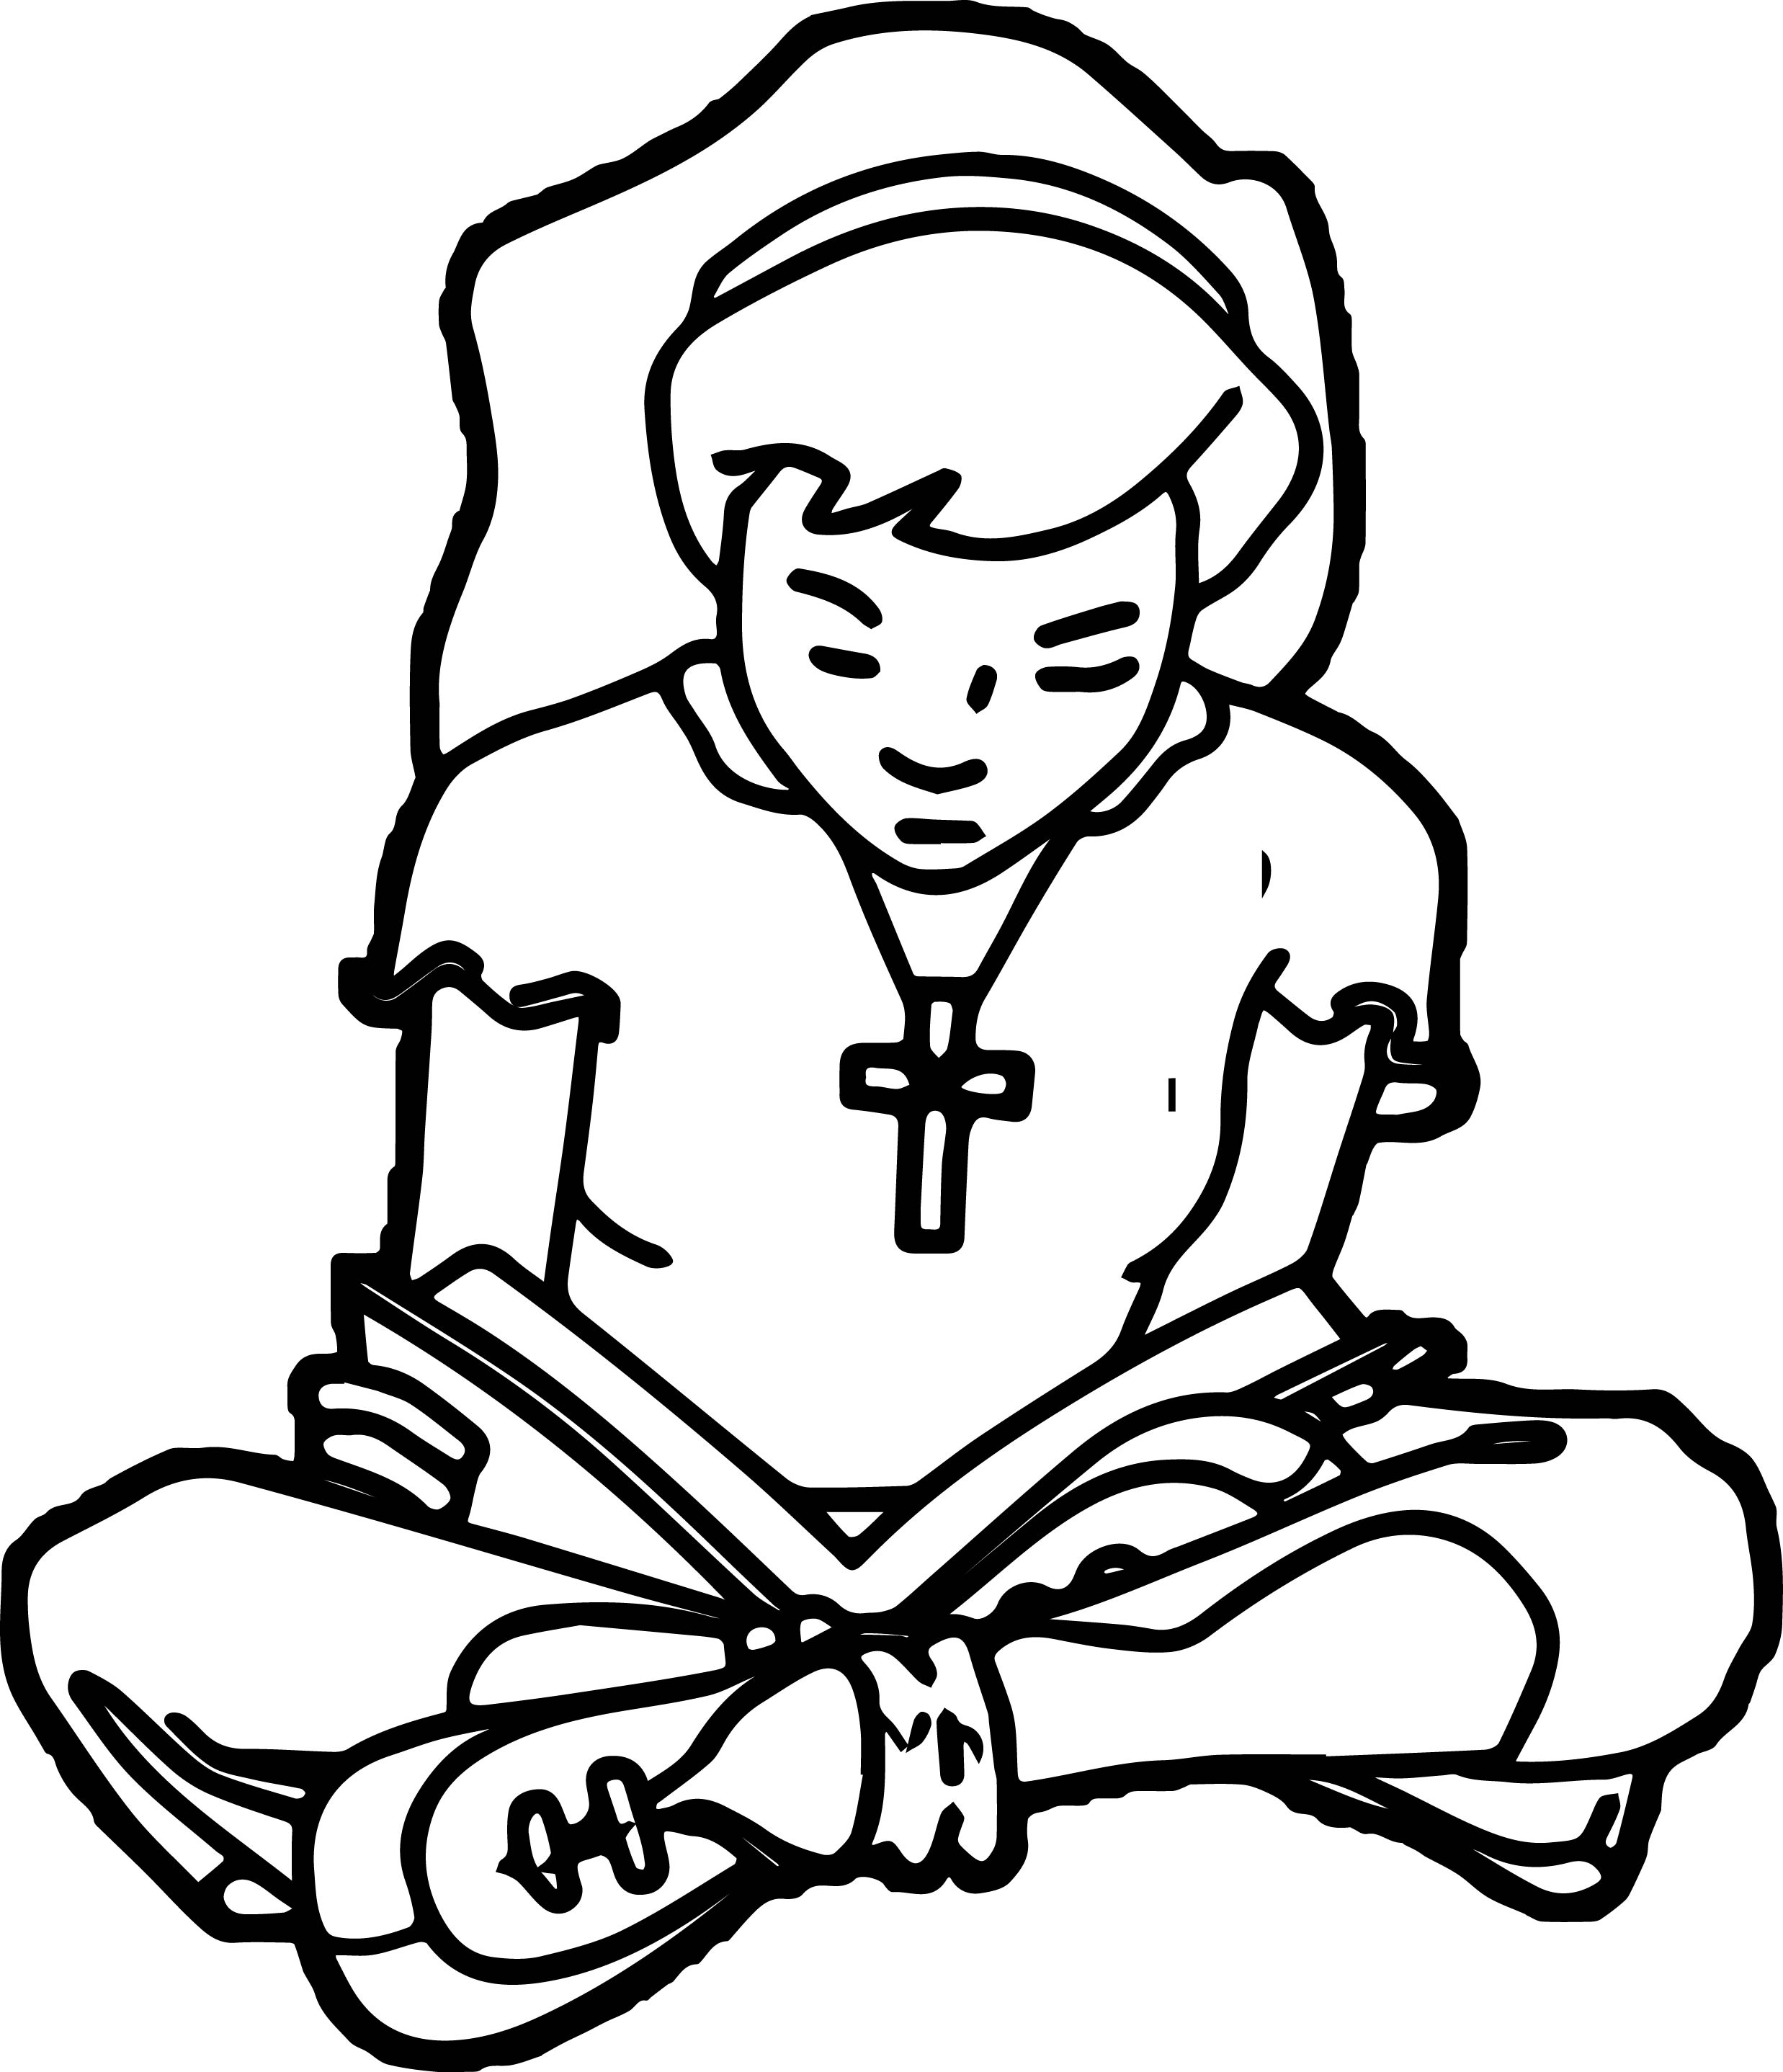 95 Reading Bible Coloring Page